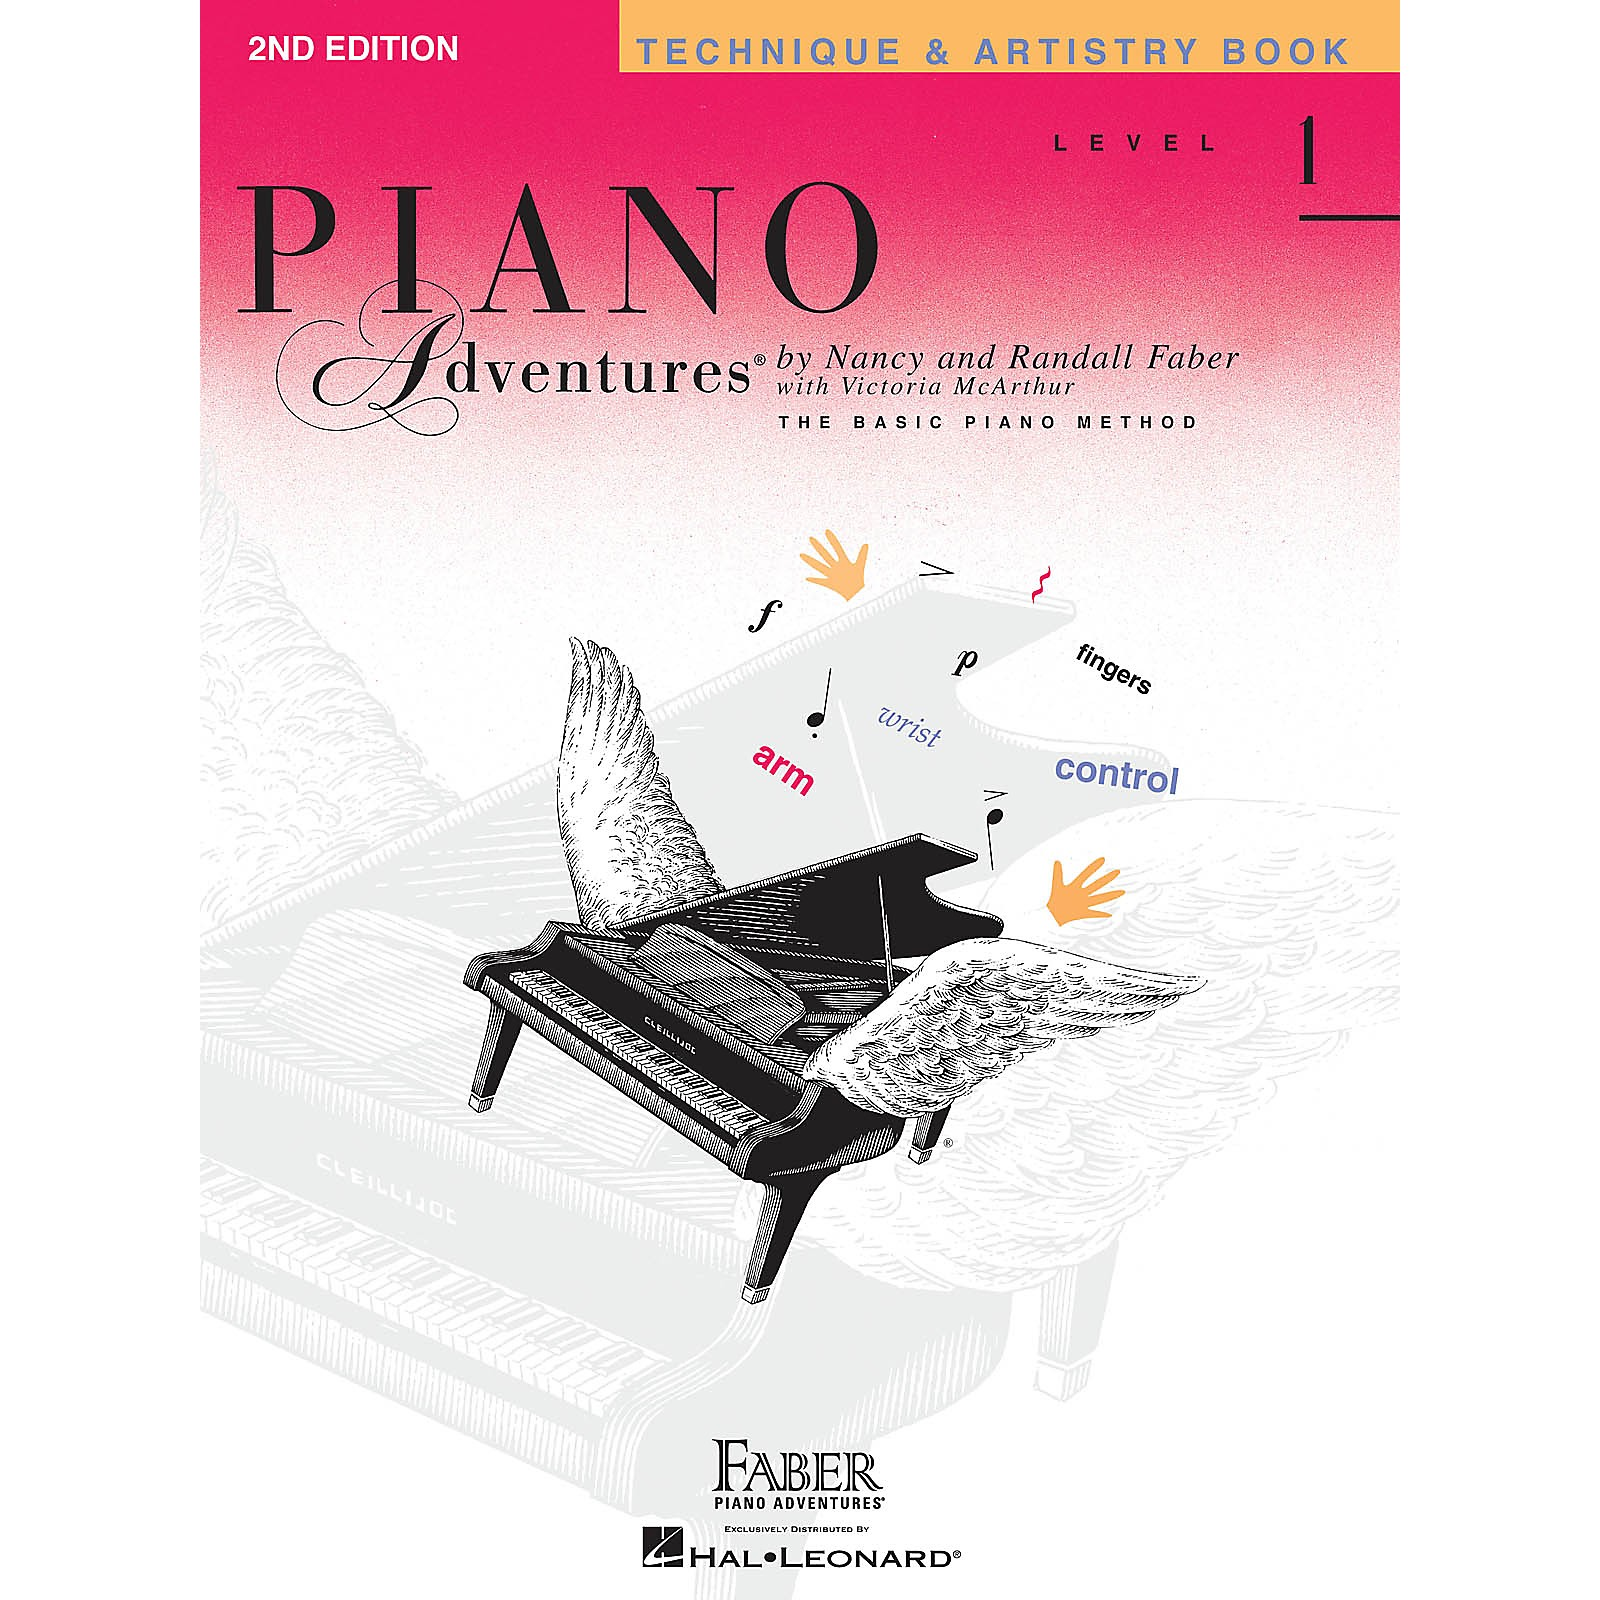 Faber Piano Adventures Level 1 - Technique & Artistry Book - Original Edition Faber Piano Adventures Book by Nancy Faber